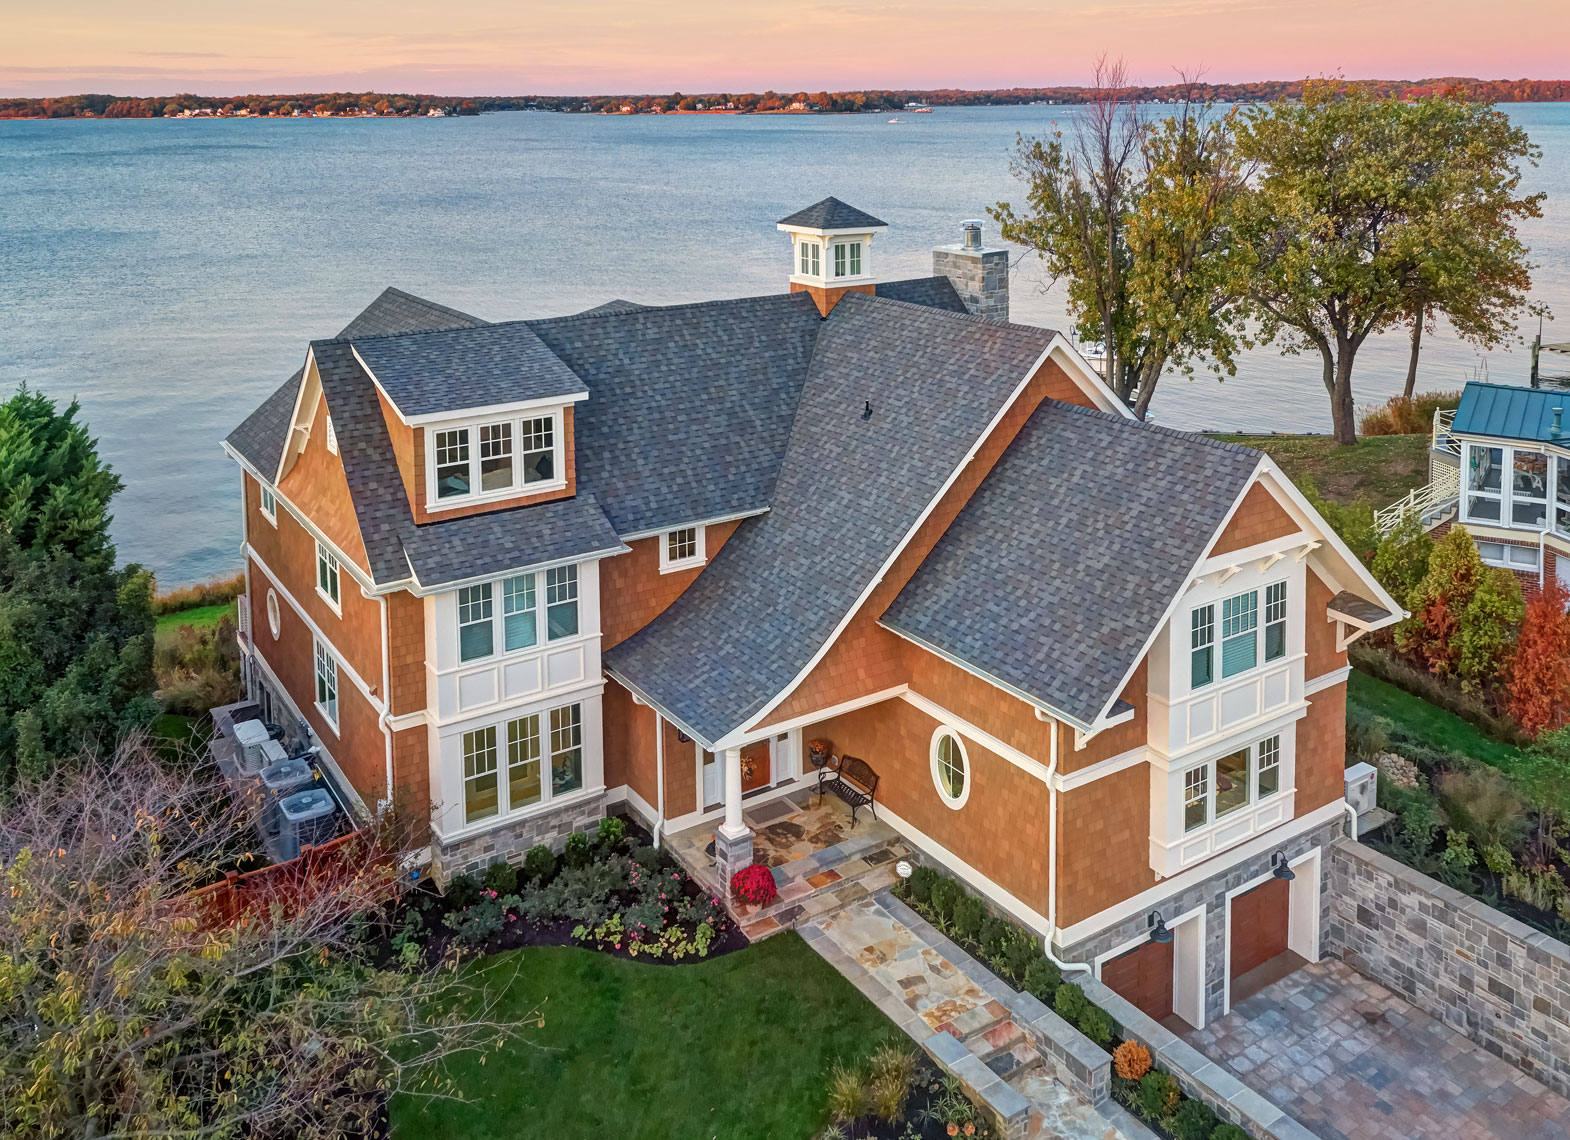 Lakeshore home/Weather Shield windows/arial drone photography